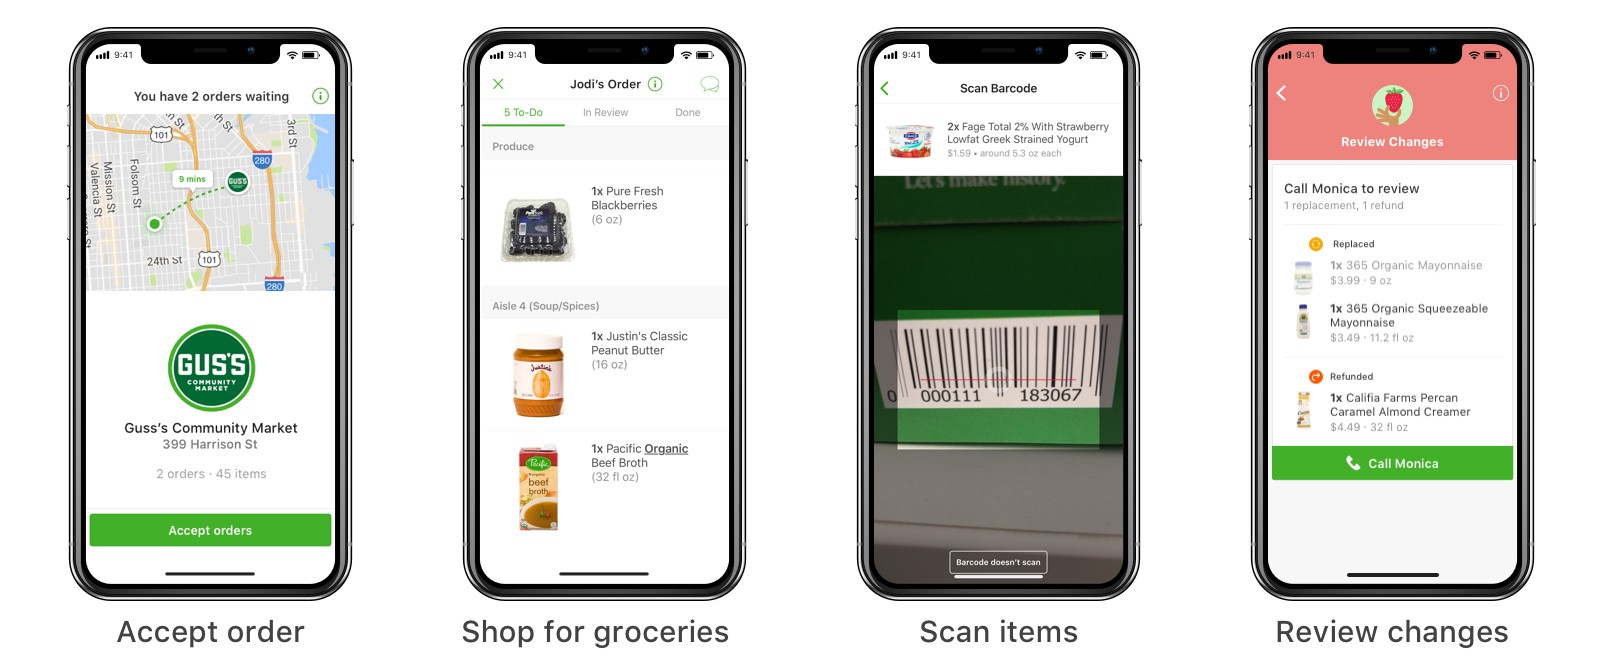 Instacart Anytime: A Data Science Paradigm